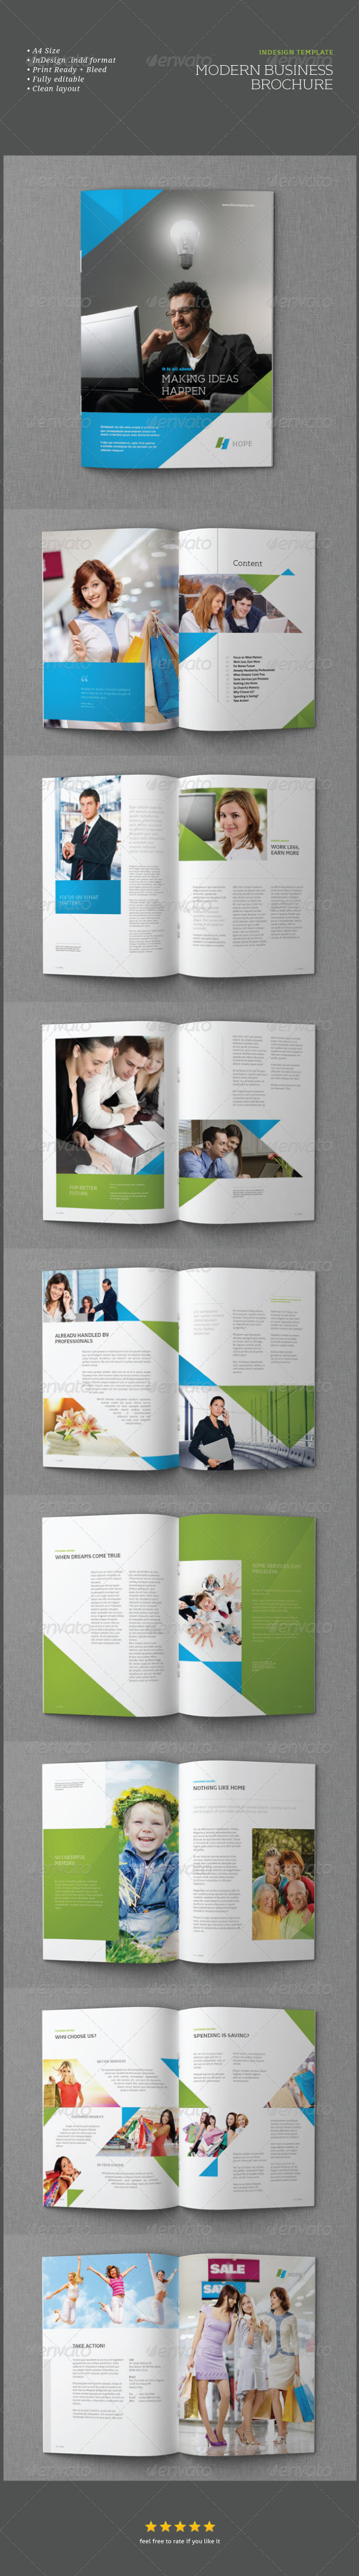 InDesign Modern Business Brochure Template - Corporate Brochures